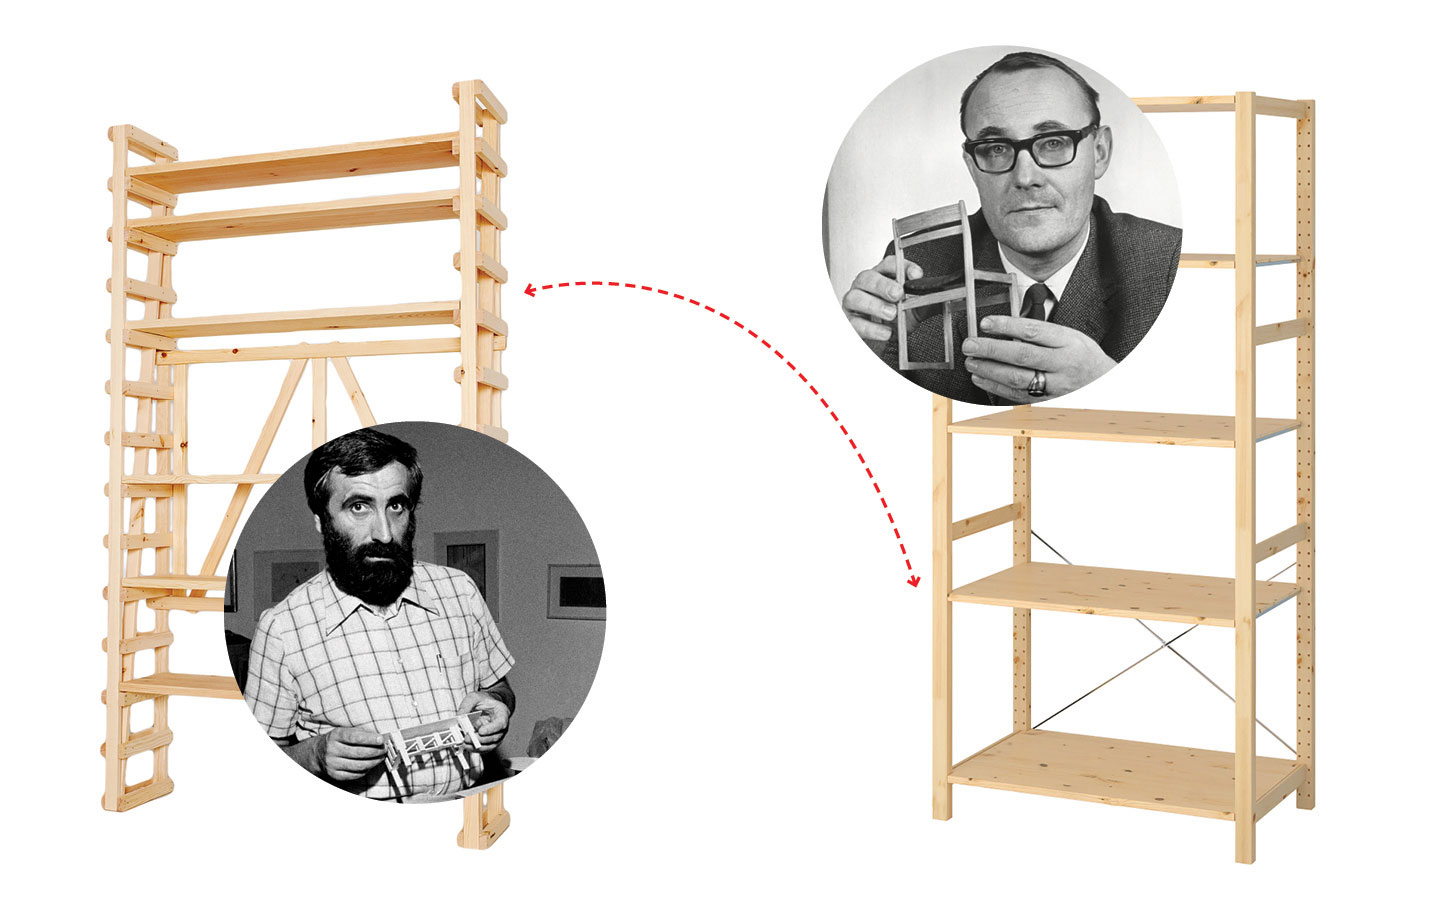 Enzo Mari on the left and Ingvar Kamprad on the right. Collage that illustrates Glenn Adamsons's article on *The Nation*.